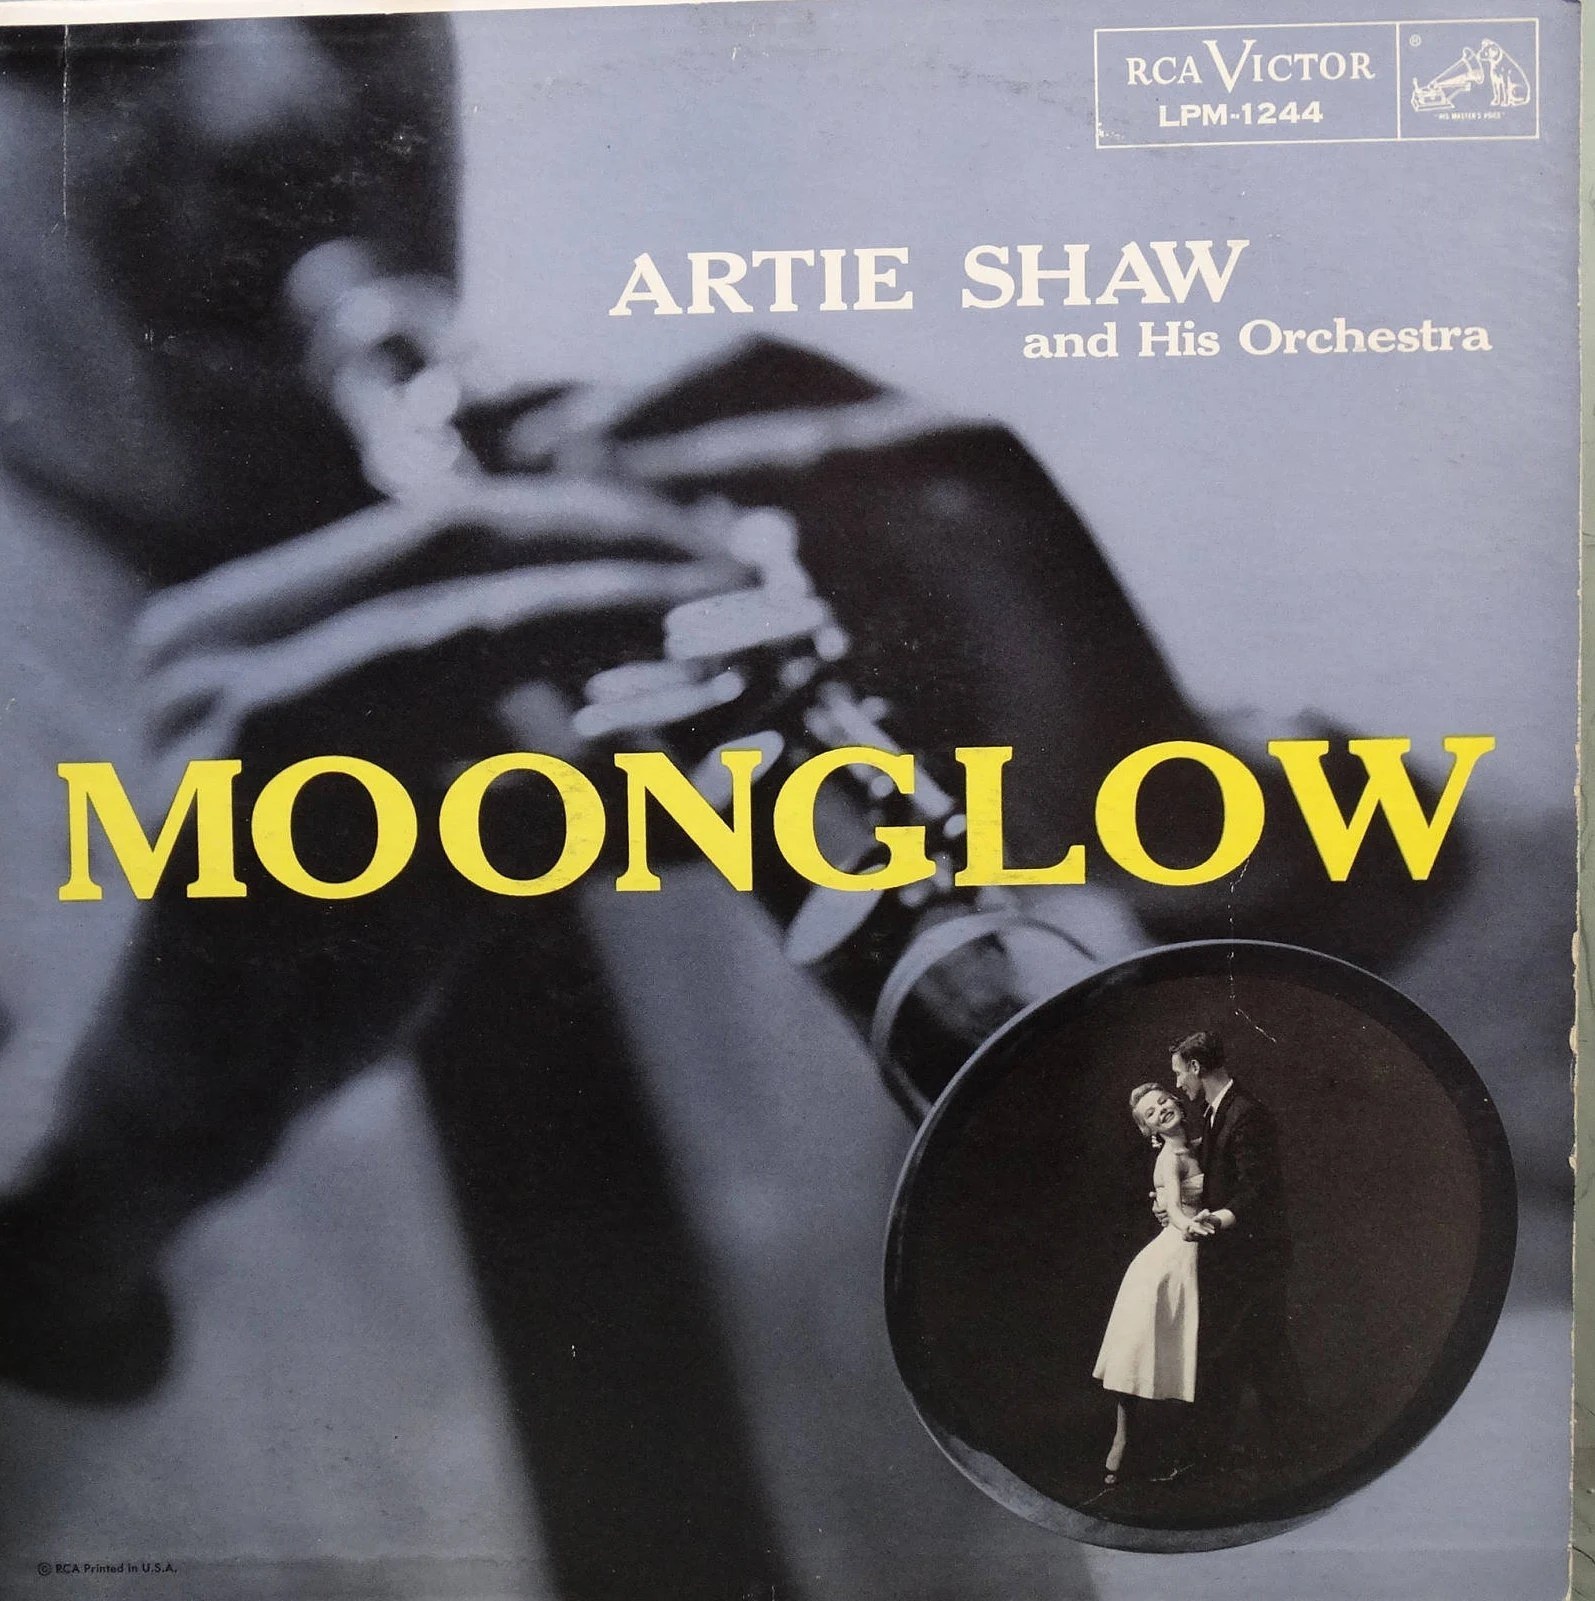 Artie Shaw Genre Artie Shaw And His Orchestra Moonglow 1956 Lp Album Vinyl Record Jazz Swing Big Band Music